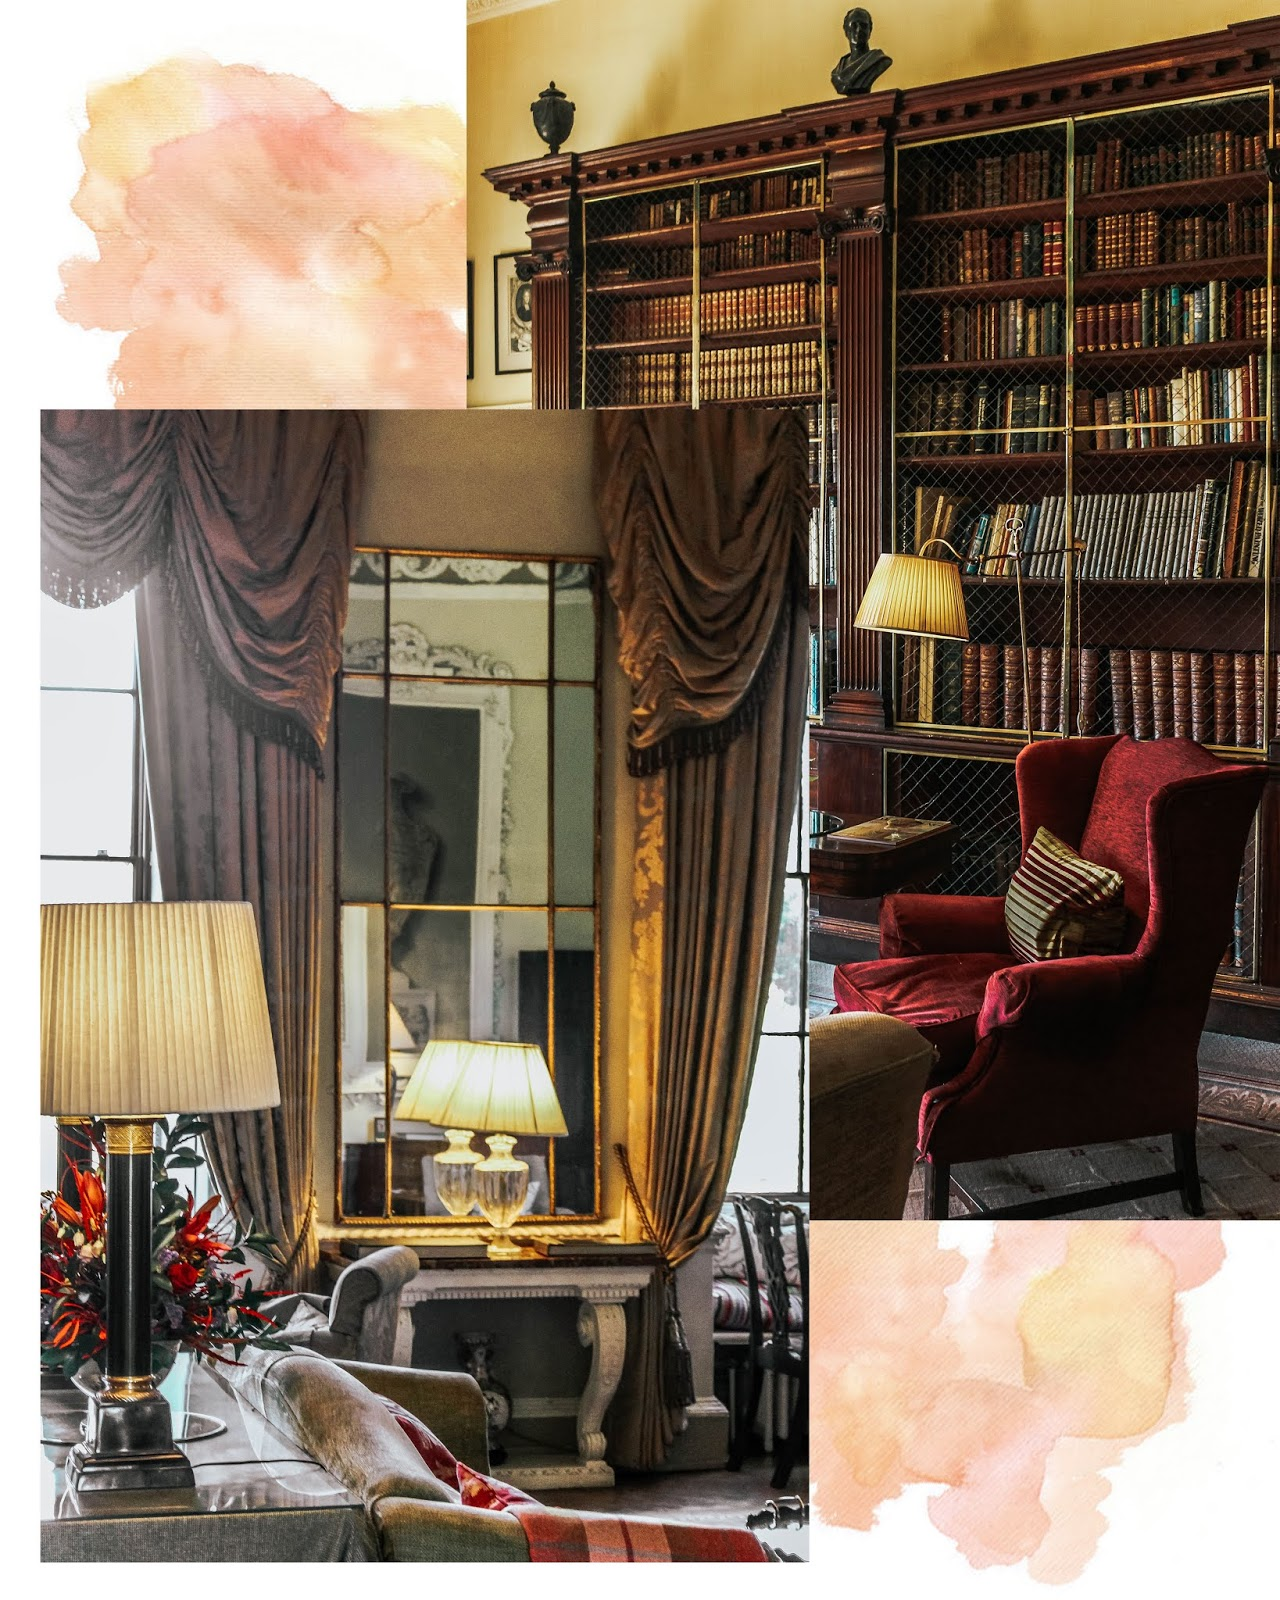 Ston Easton Park Hotel Drawing Room and Library